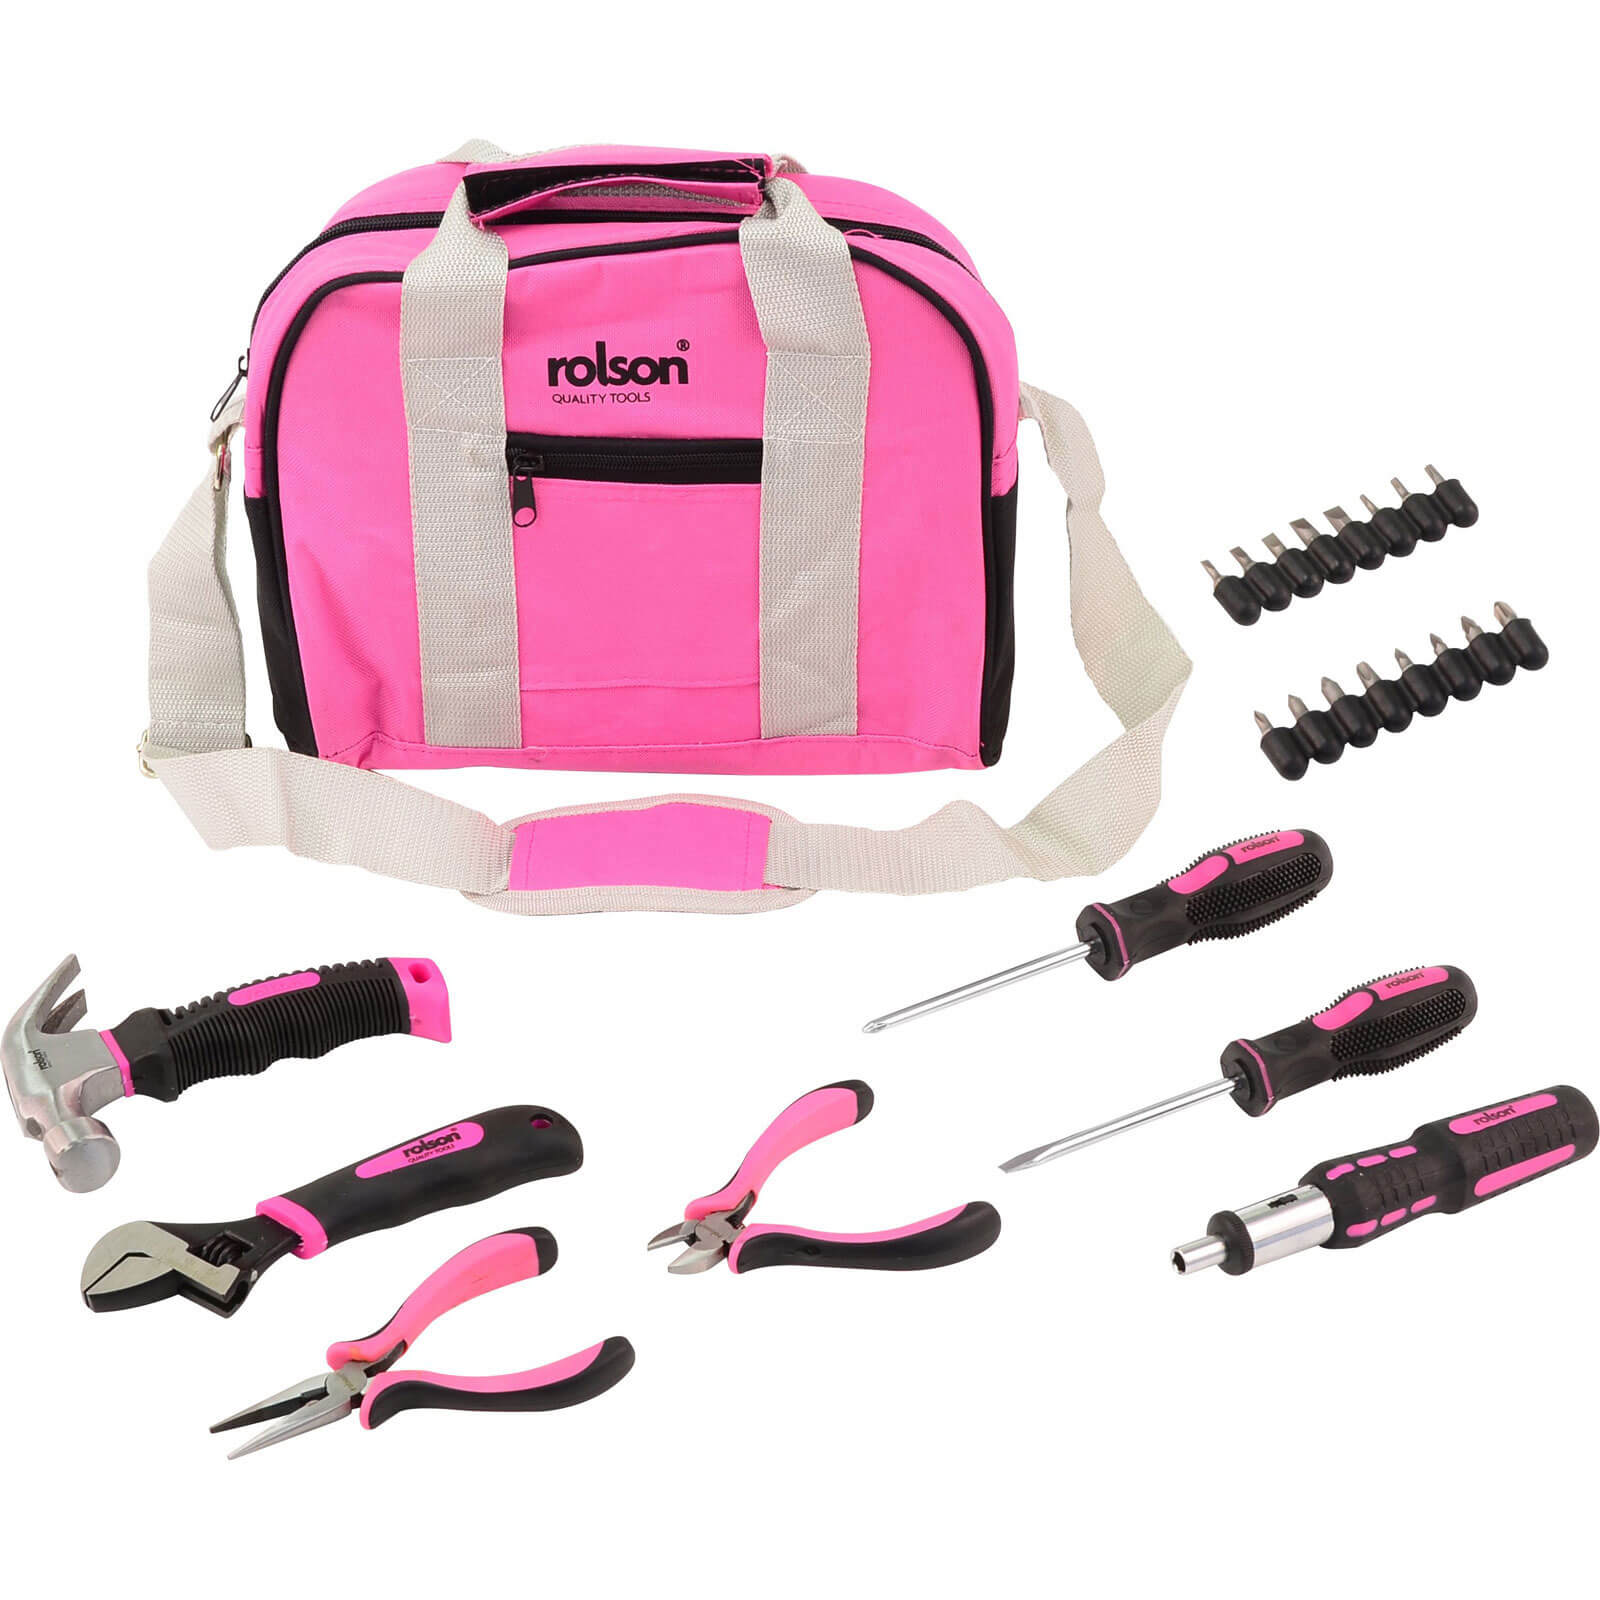 Image of Ladies Household Pink Hand Tool Kit with Tool Bag